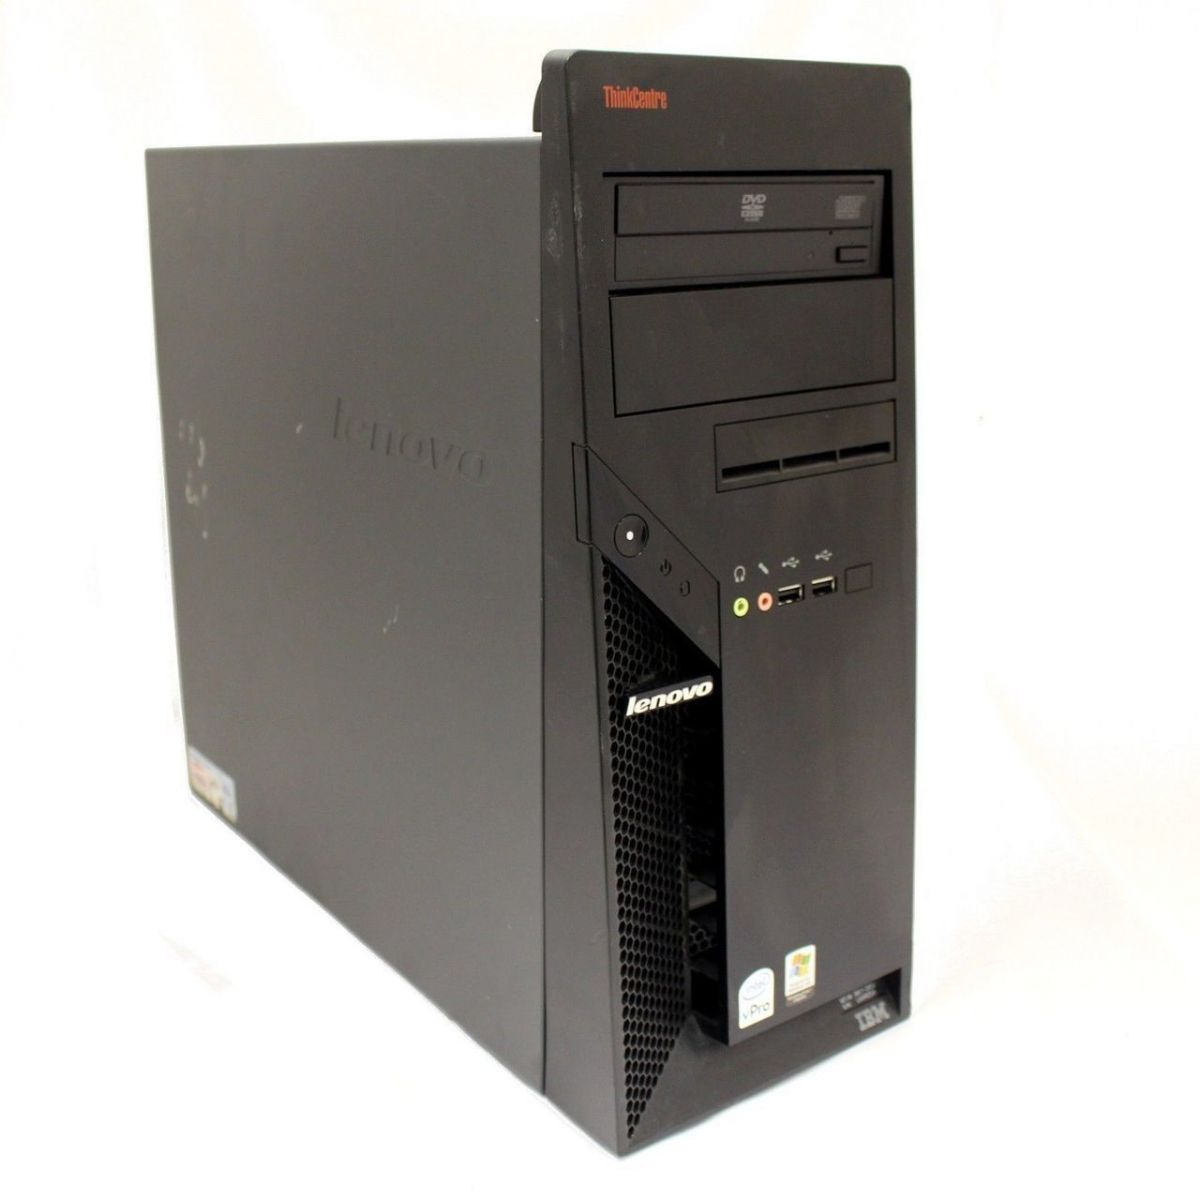 Lenovo Thinkcenter M55p Εκθεσιακό